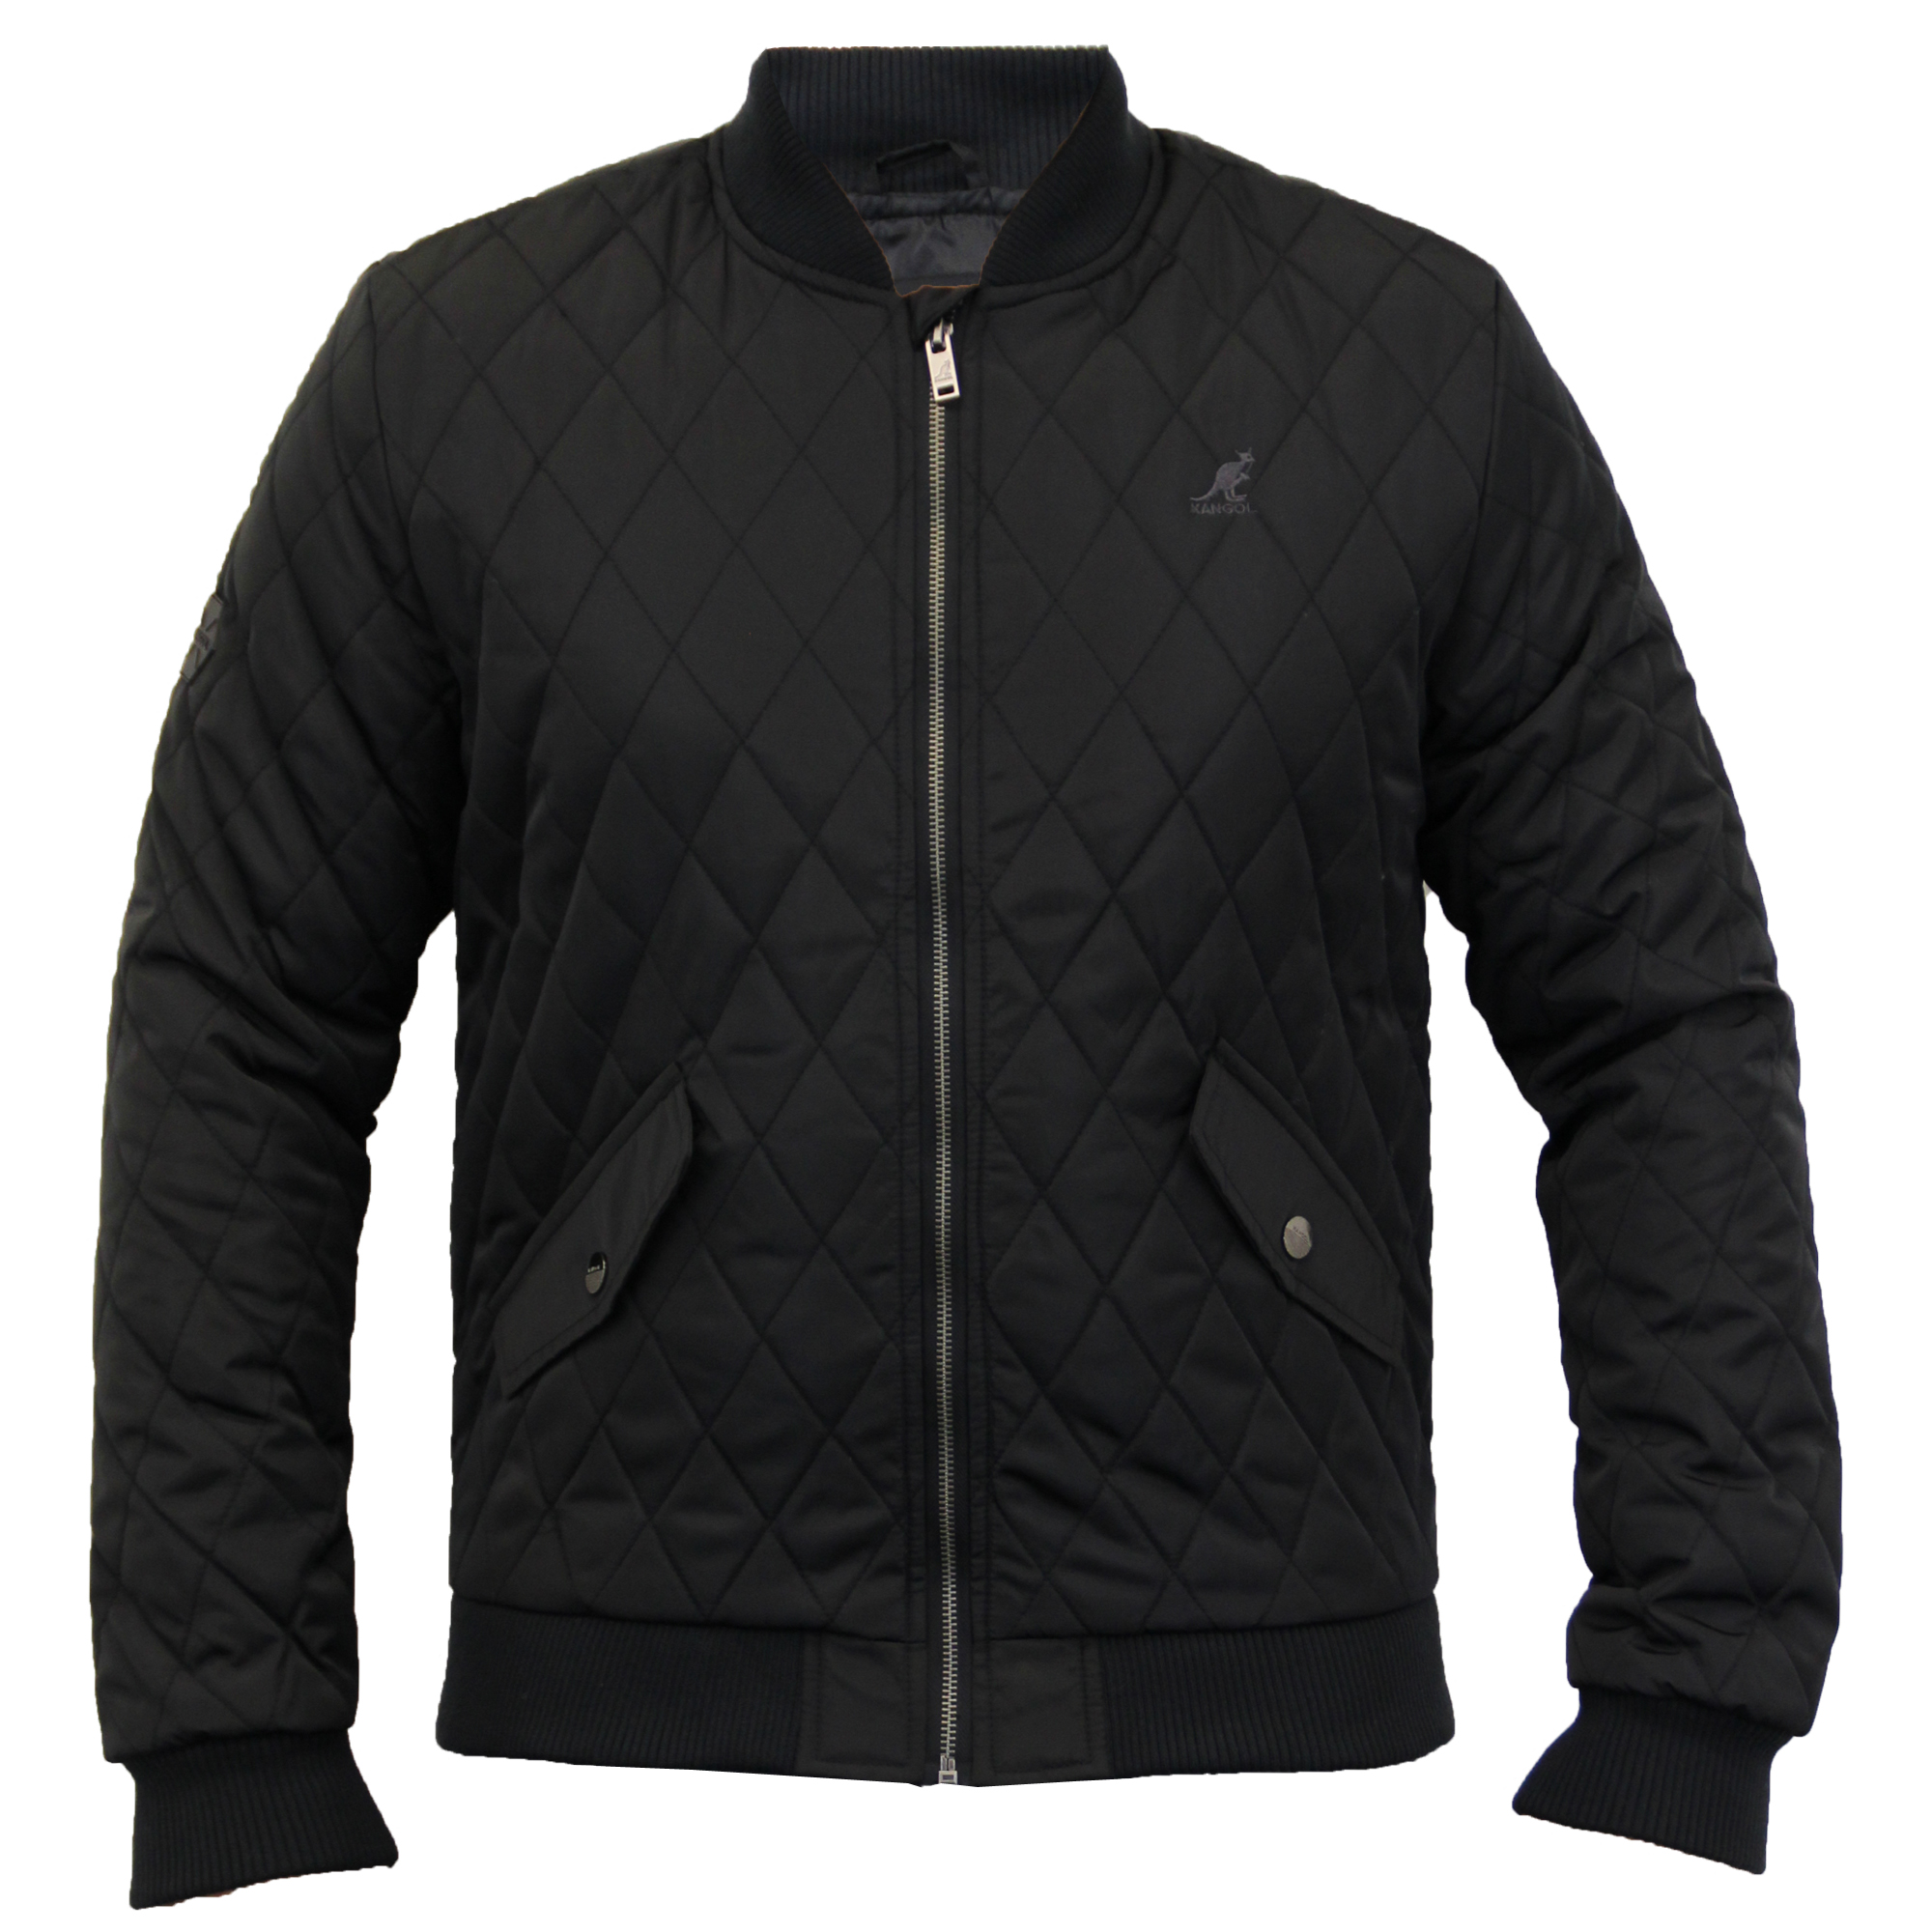 941cc1df9 Details about Mens Jacket Kangol MA1 Harrington Coat Padded Diamond Quilted  Bomber Winter New